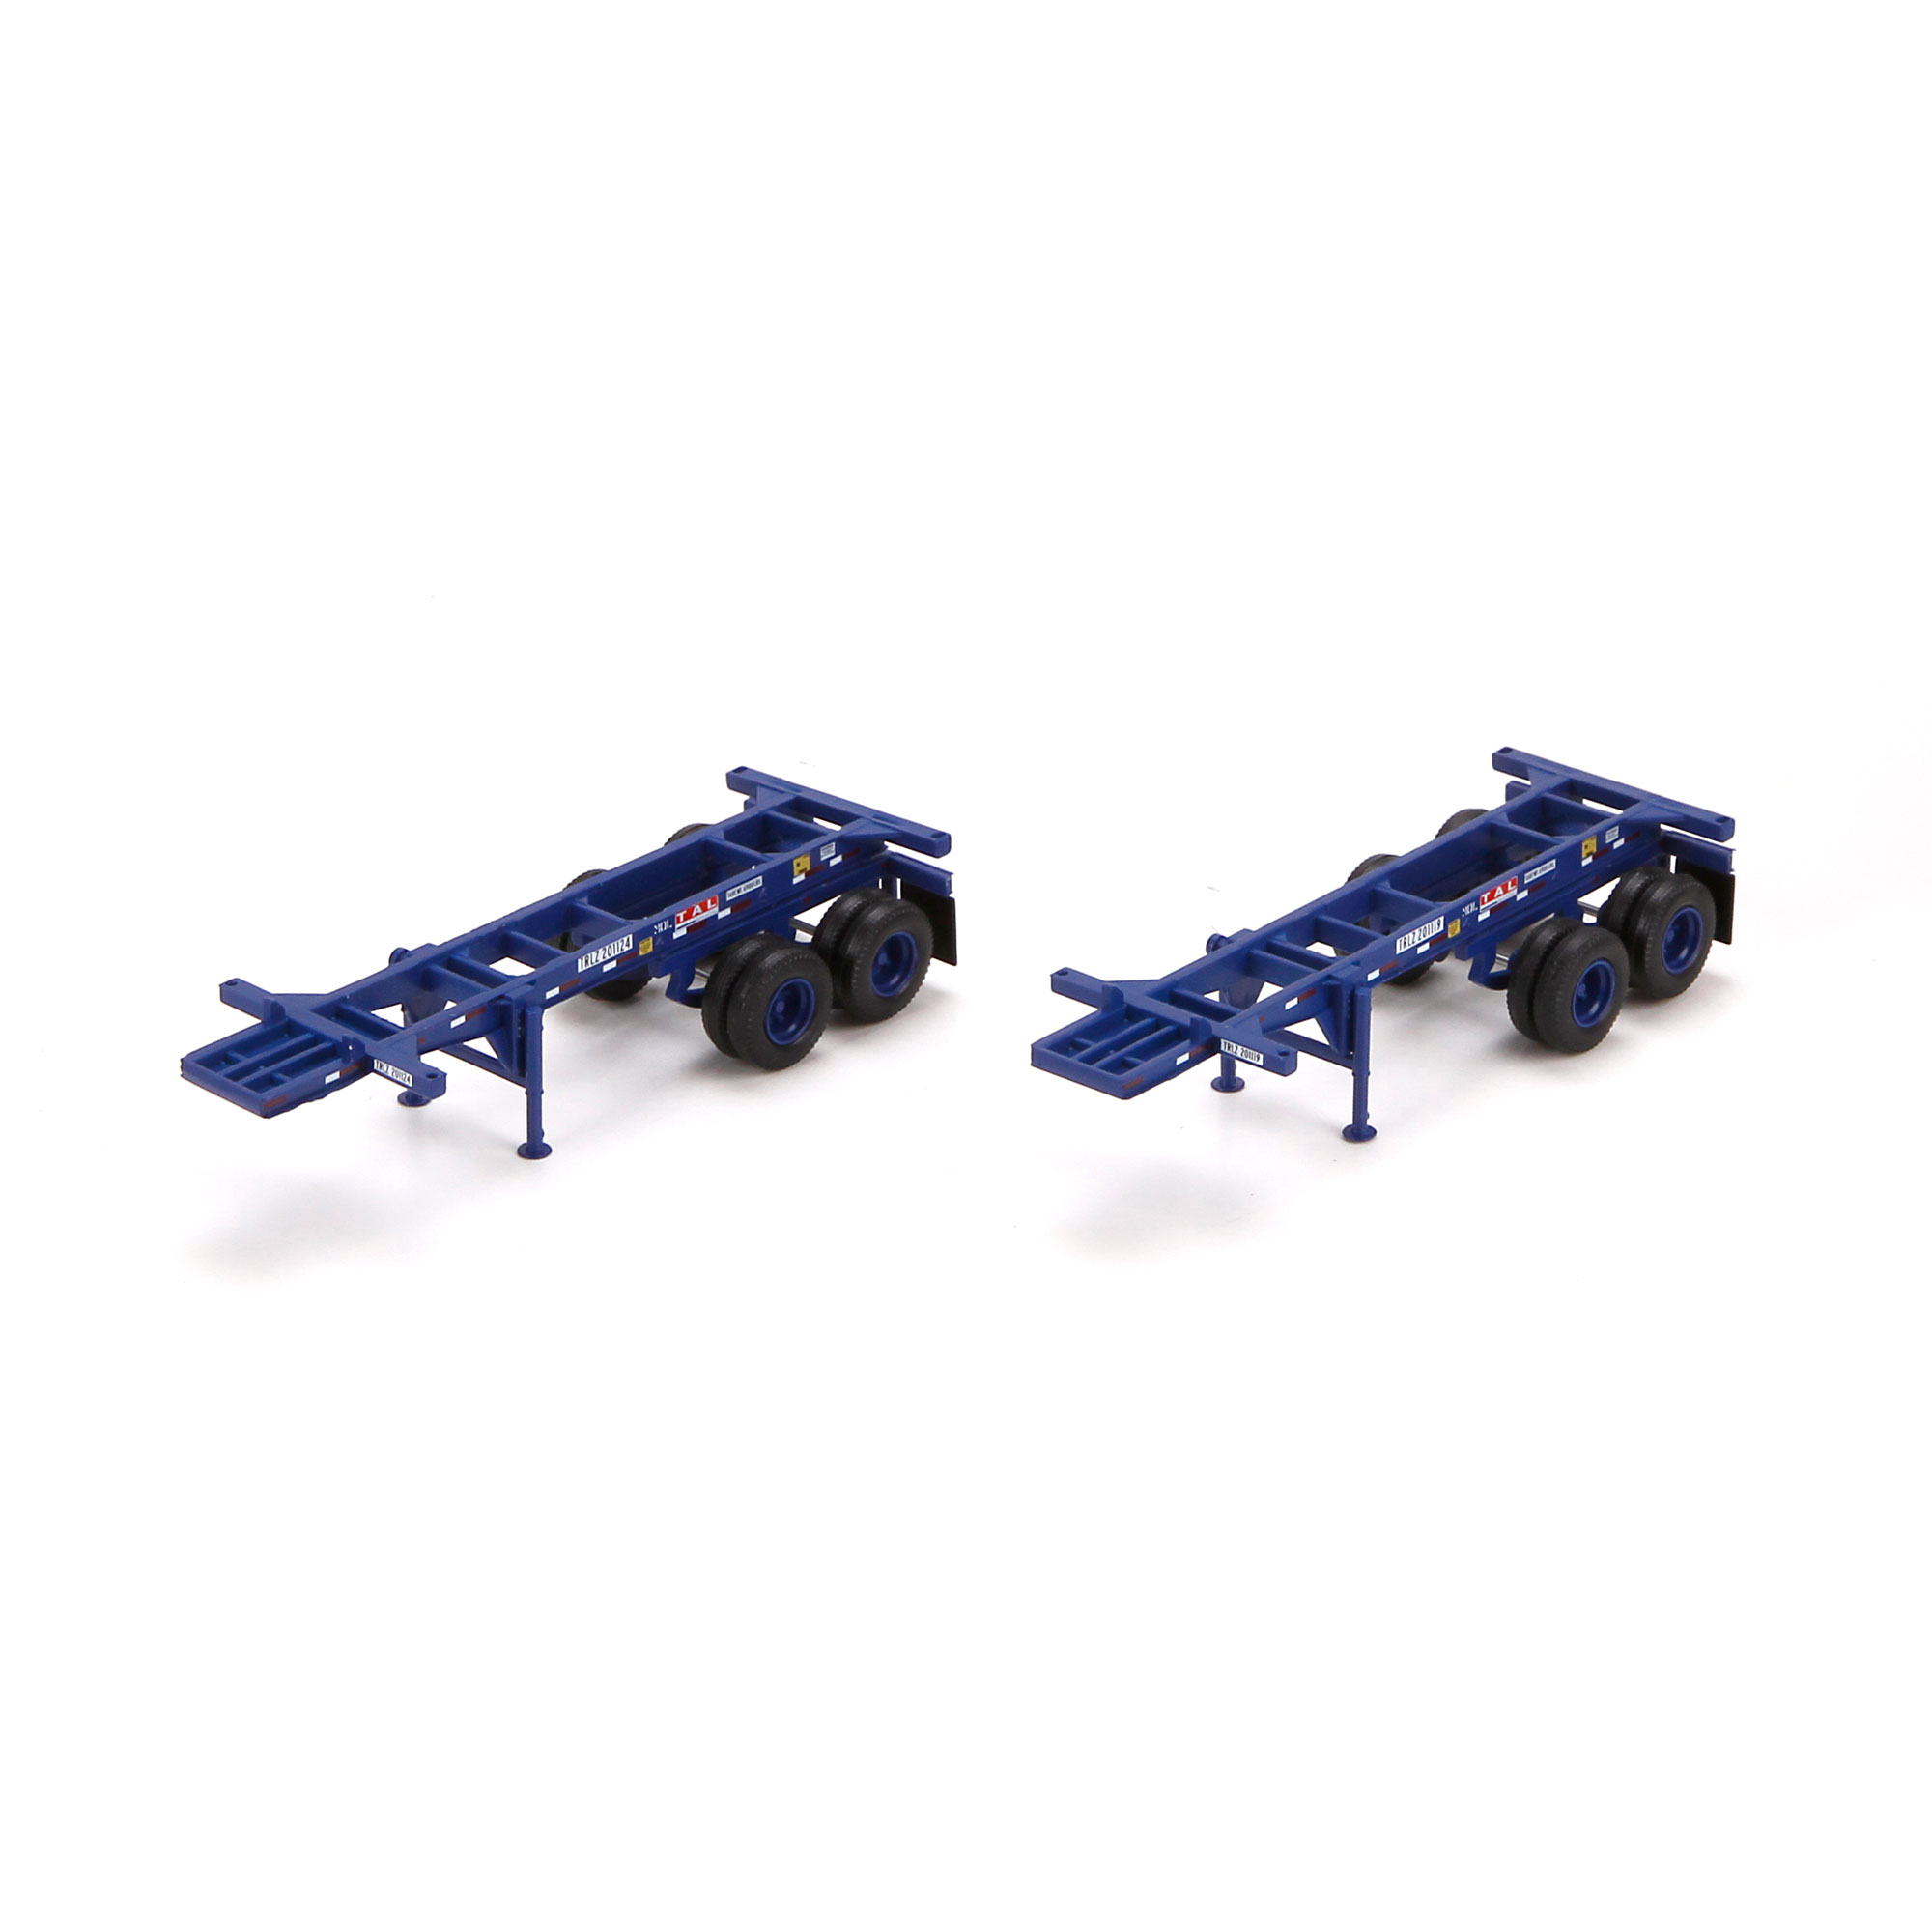 Container Chassis Landing Gear : Ho rtr container chassis tal ath athearn